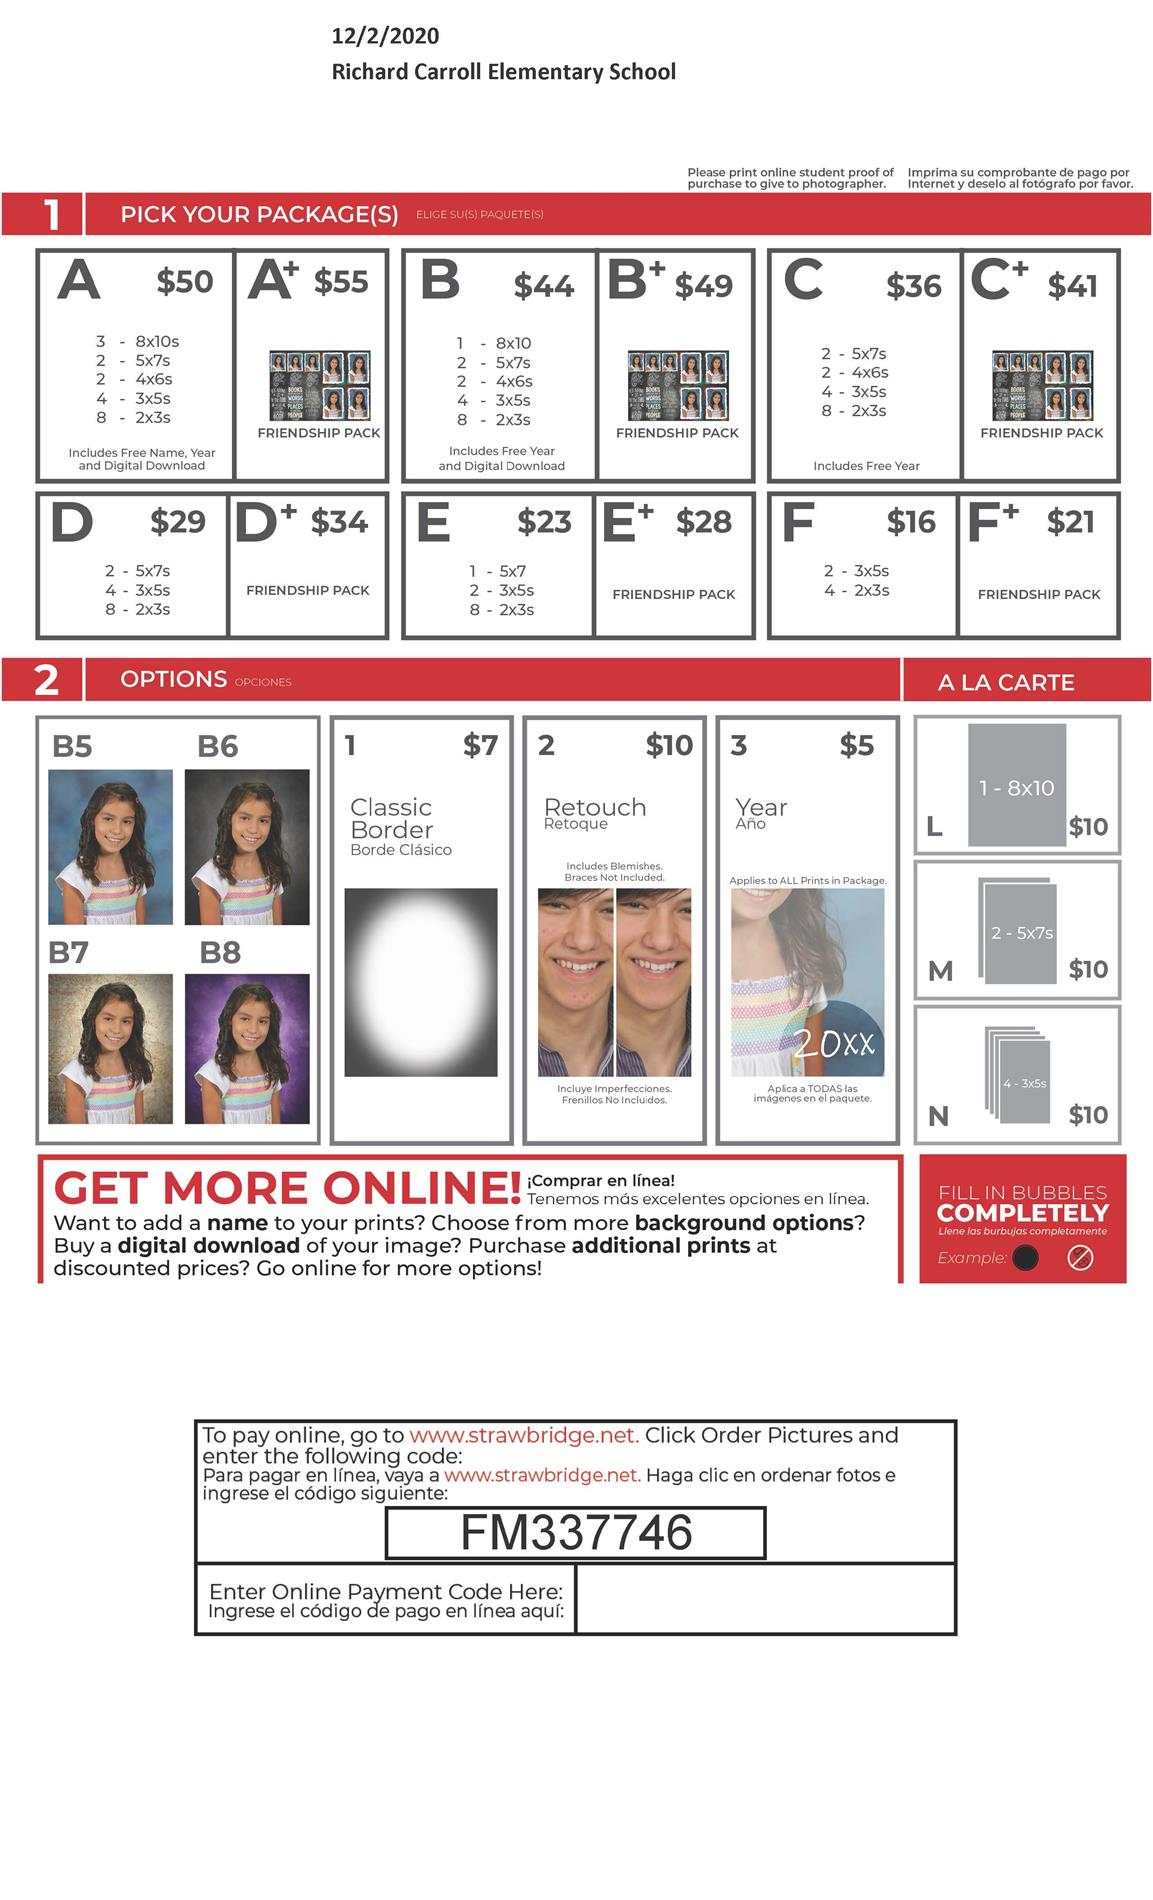 School picture purchase options